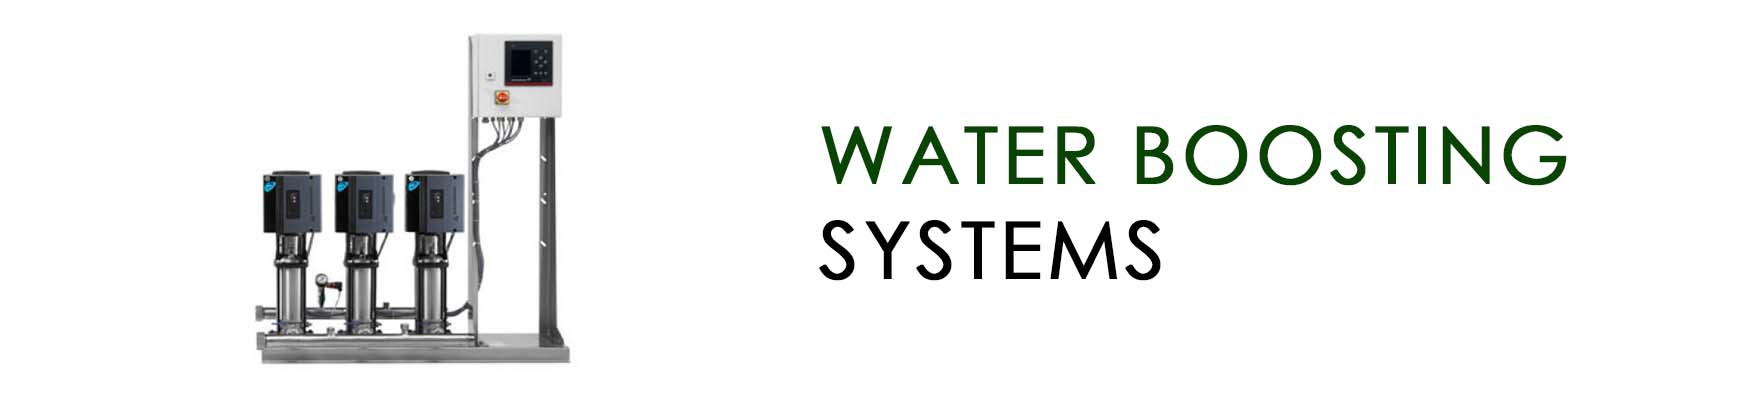 Water boosting systems BANNER